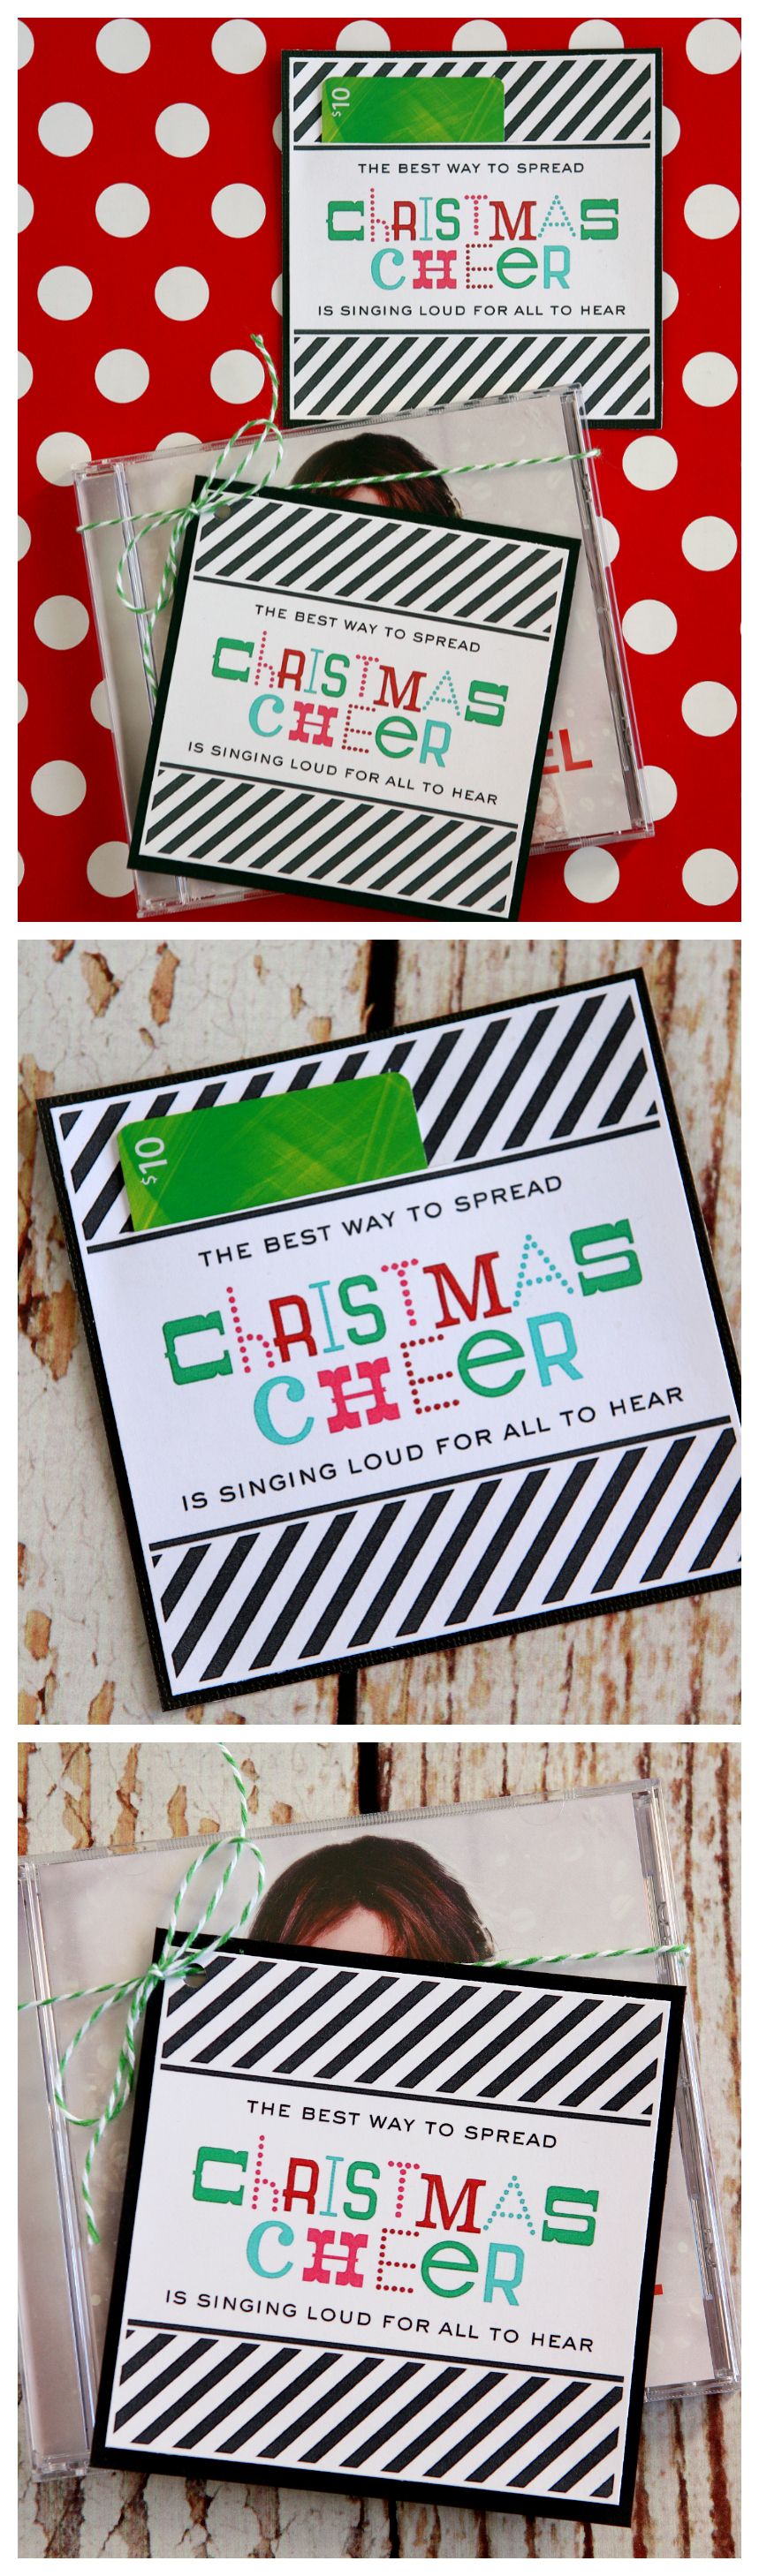 The Best Way To Spread Christmas Cheer Is Singing Loud For All To Hear. Fun Christmas Gift - Christmas Music!